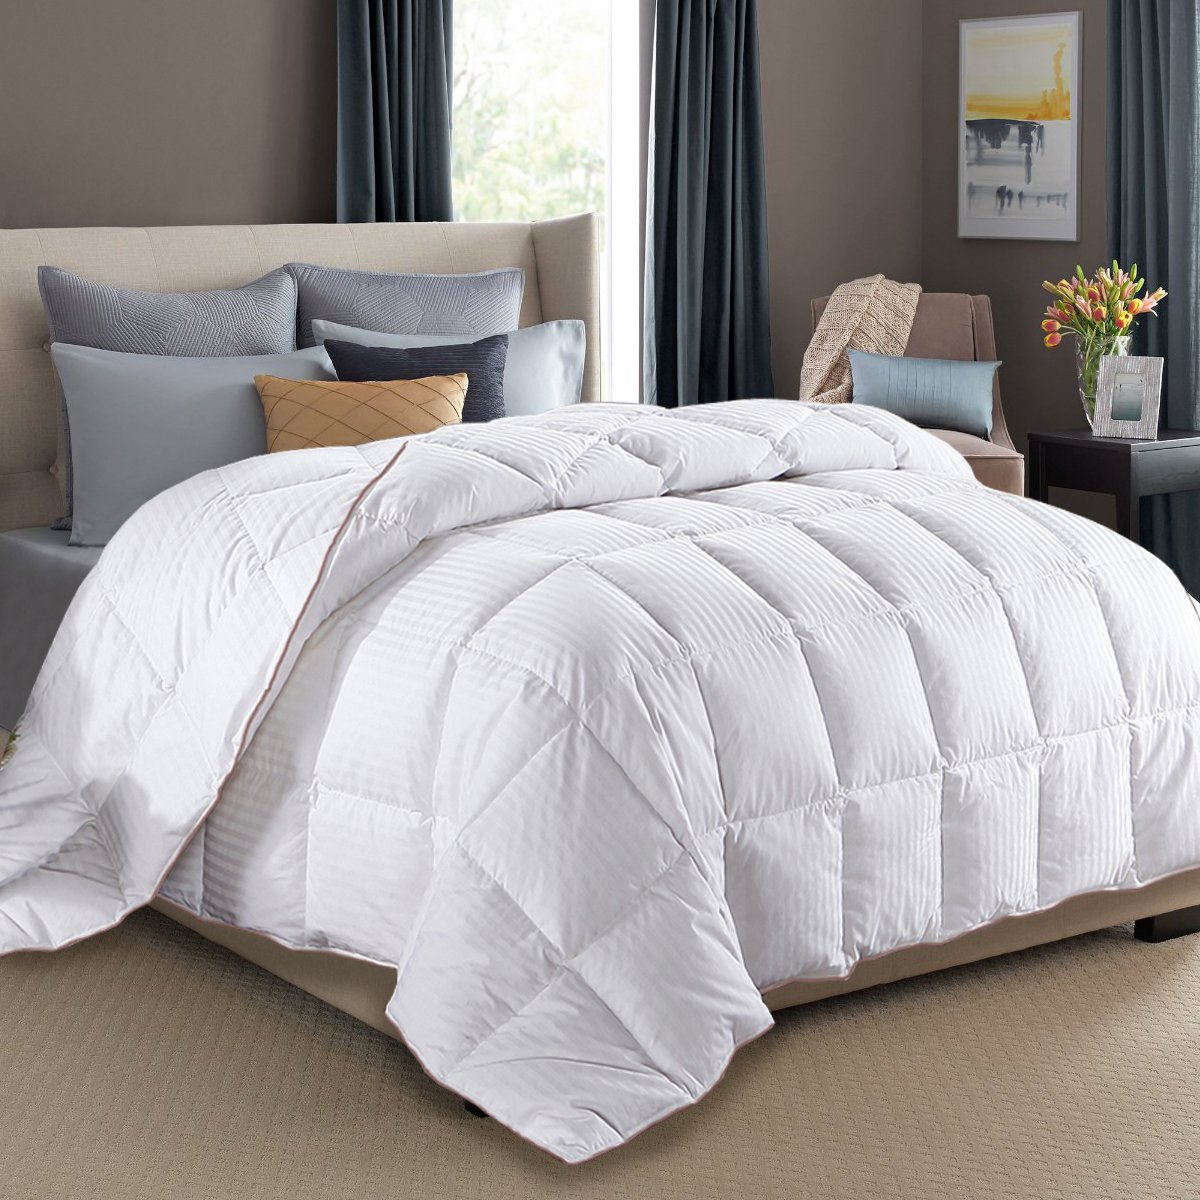 King Size Duvet Insert White Goose Down Feather Comforter 100% Cotton Cover Fluffy Bed Quilt Blanket All Season (King, White) by SNOWMAN